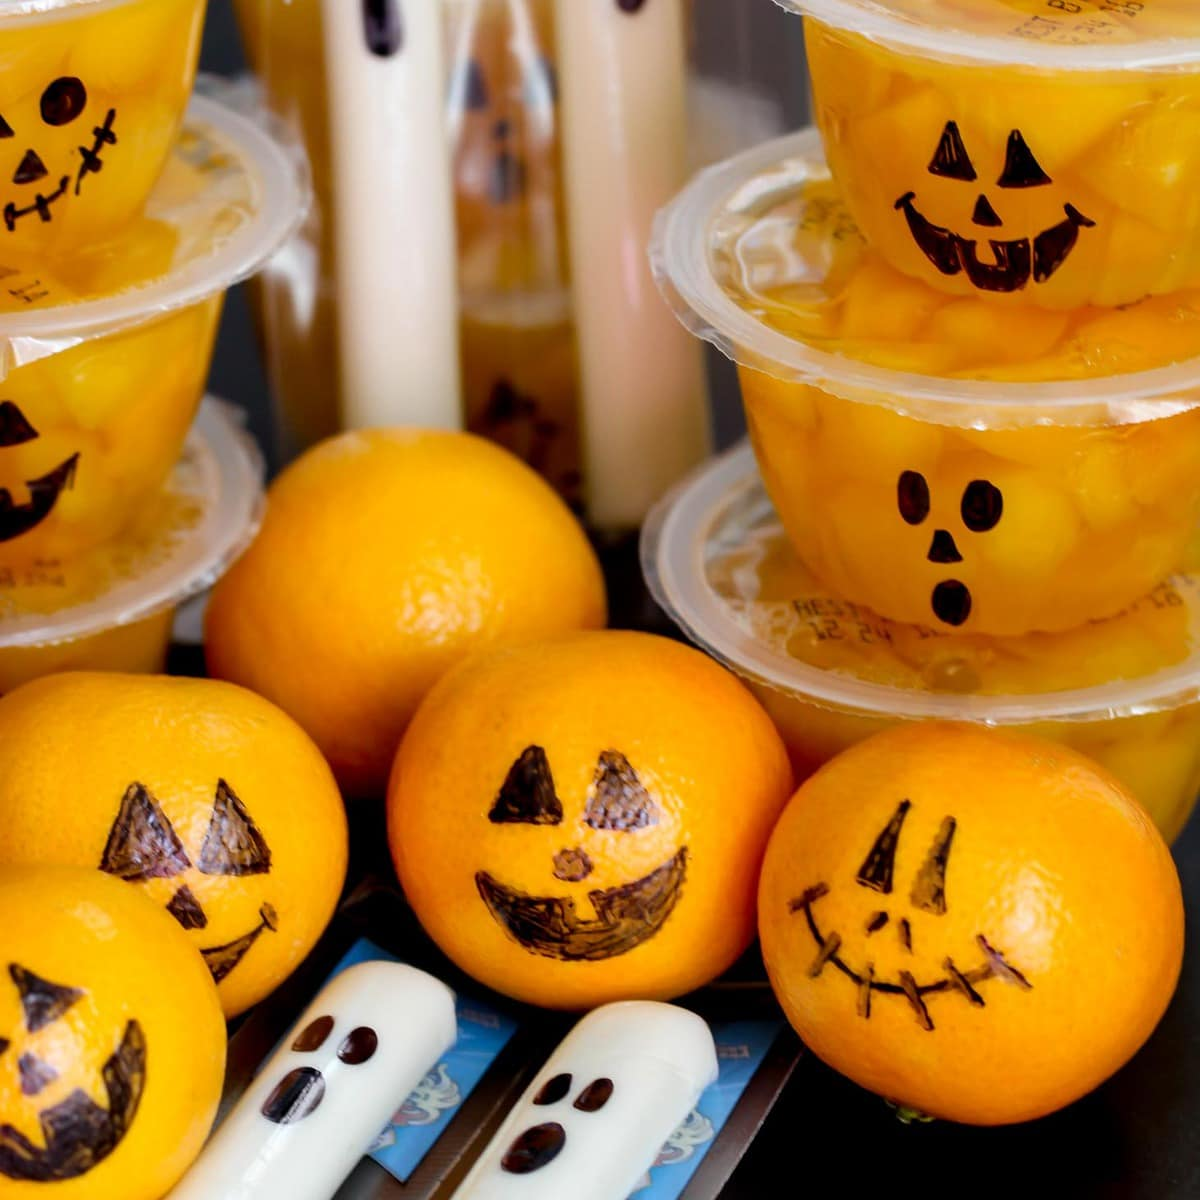 Healthy Halloween Snacks - Jack-o-lantern oranges and ghost cheese sticks